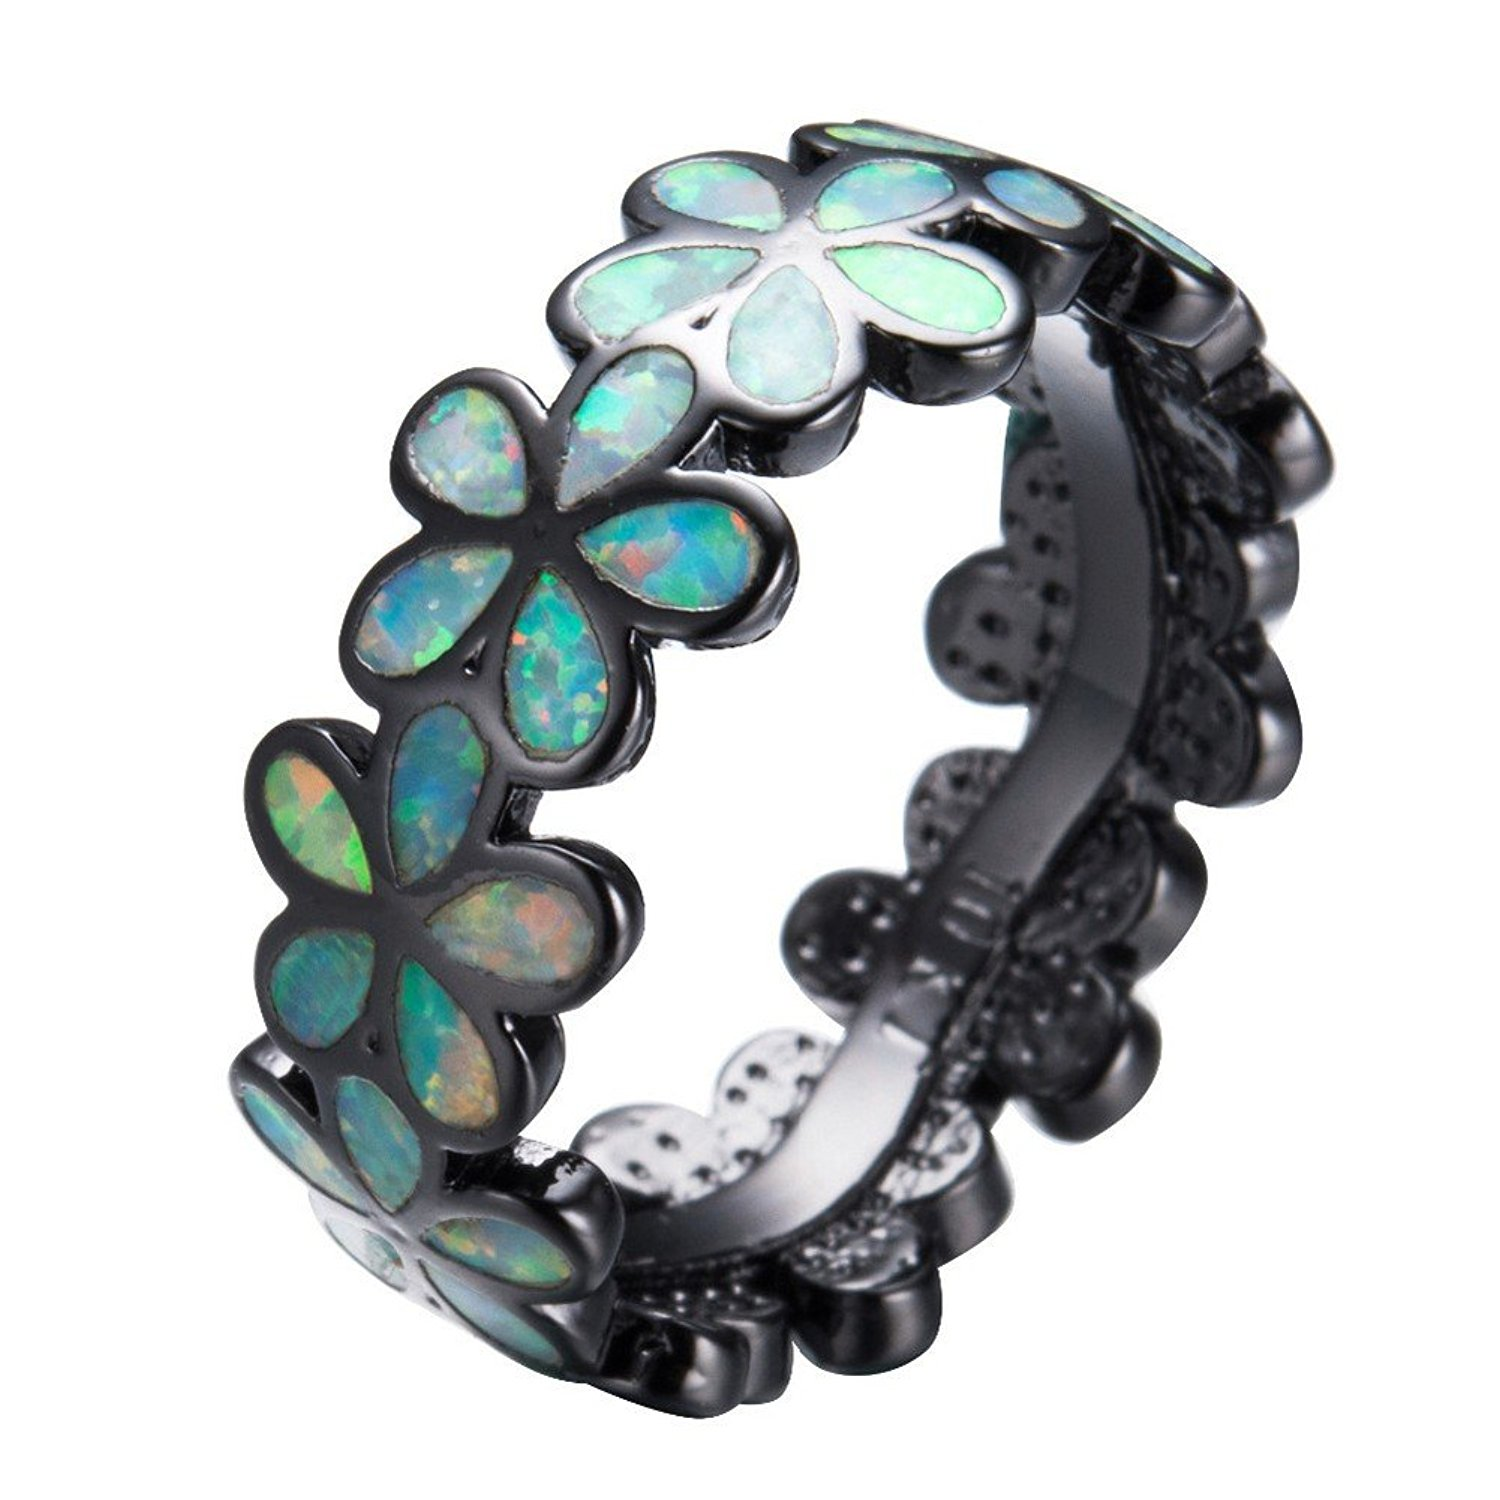 PSRINGS Lovely Flower Shape Rainbow Fire Opal Rings Lady Black Gold Filled Wedding Party Engagement Promise Ring